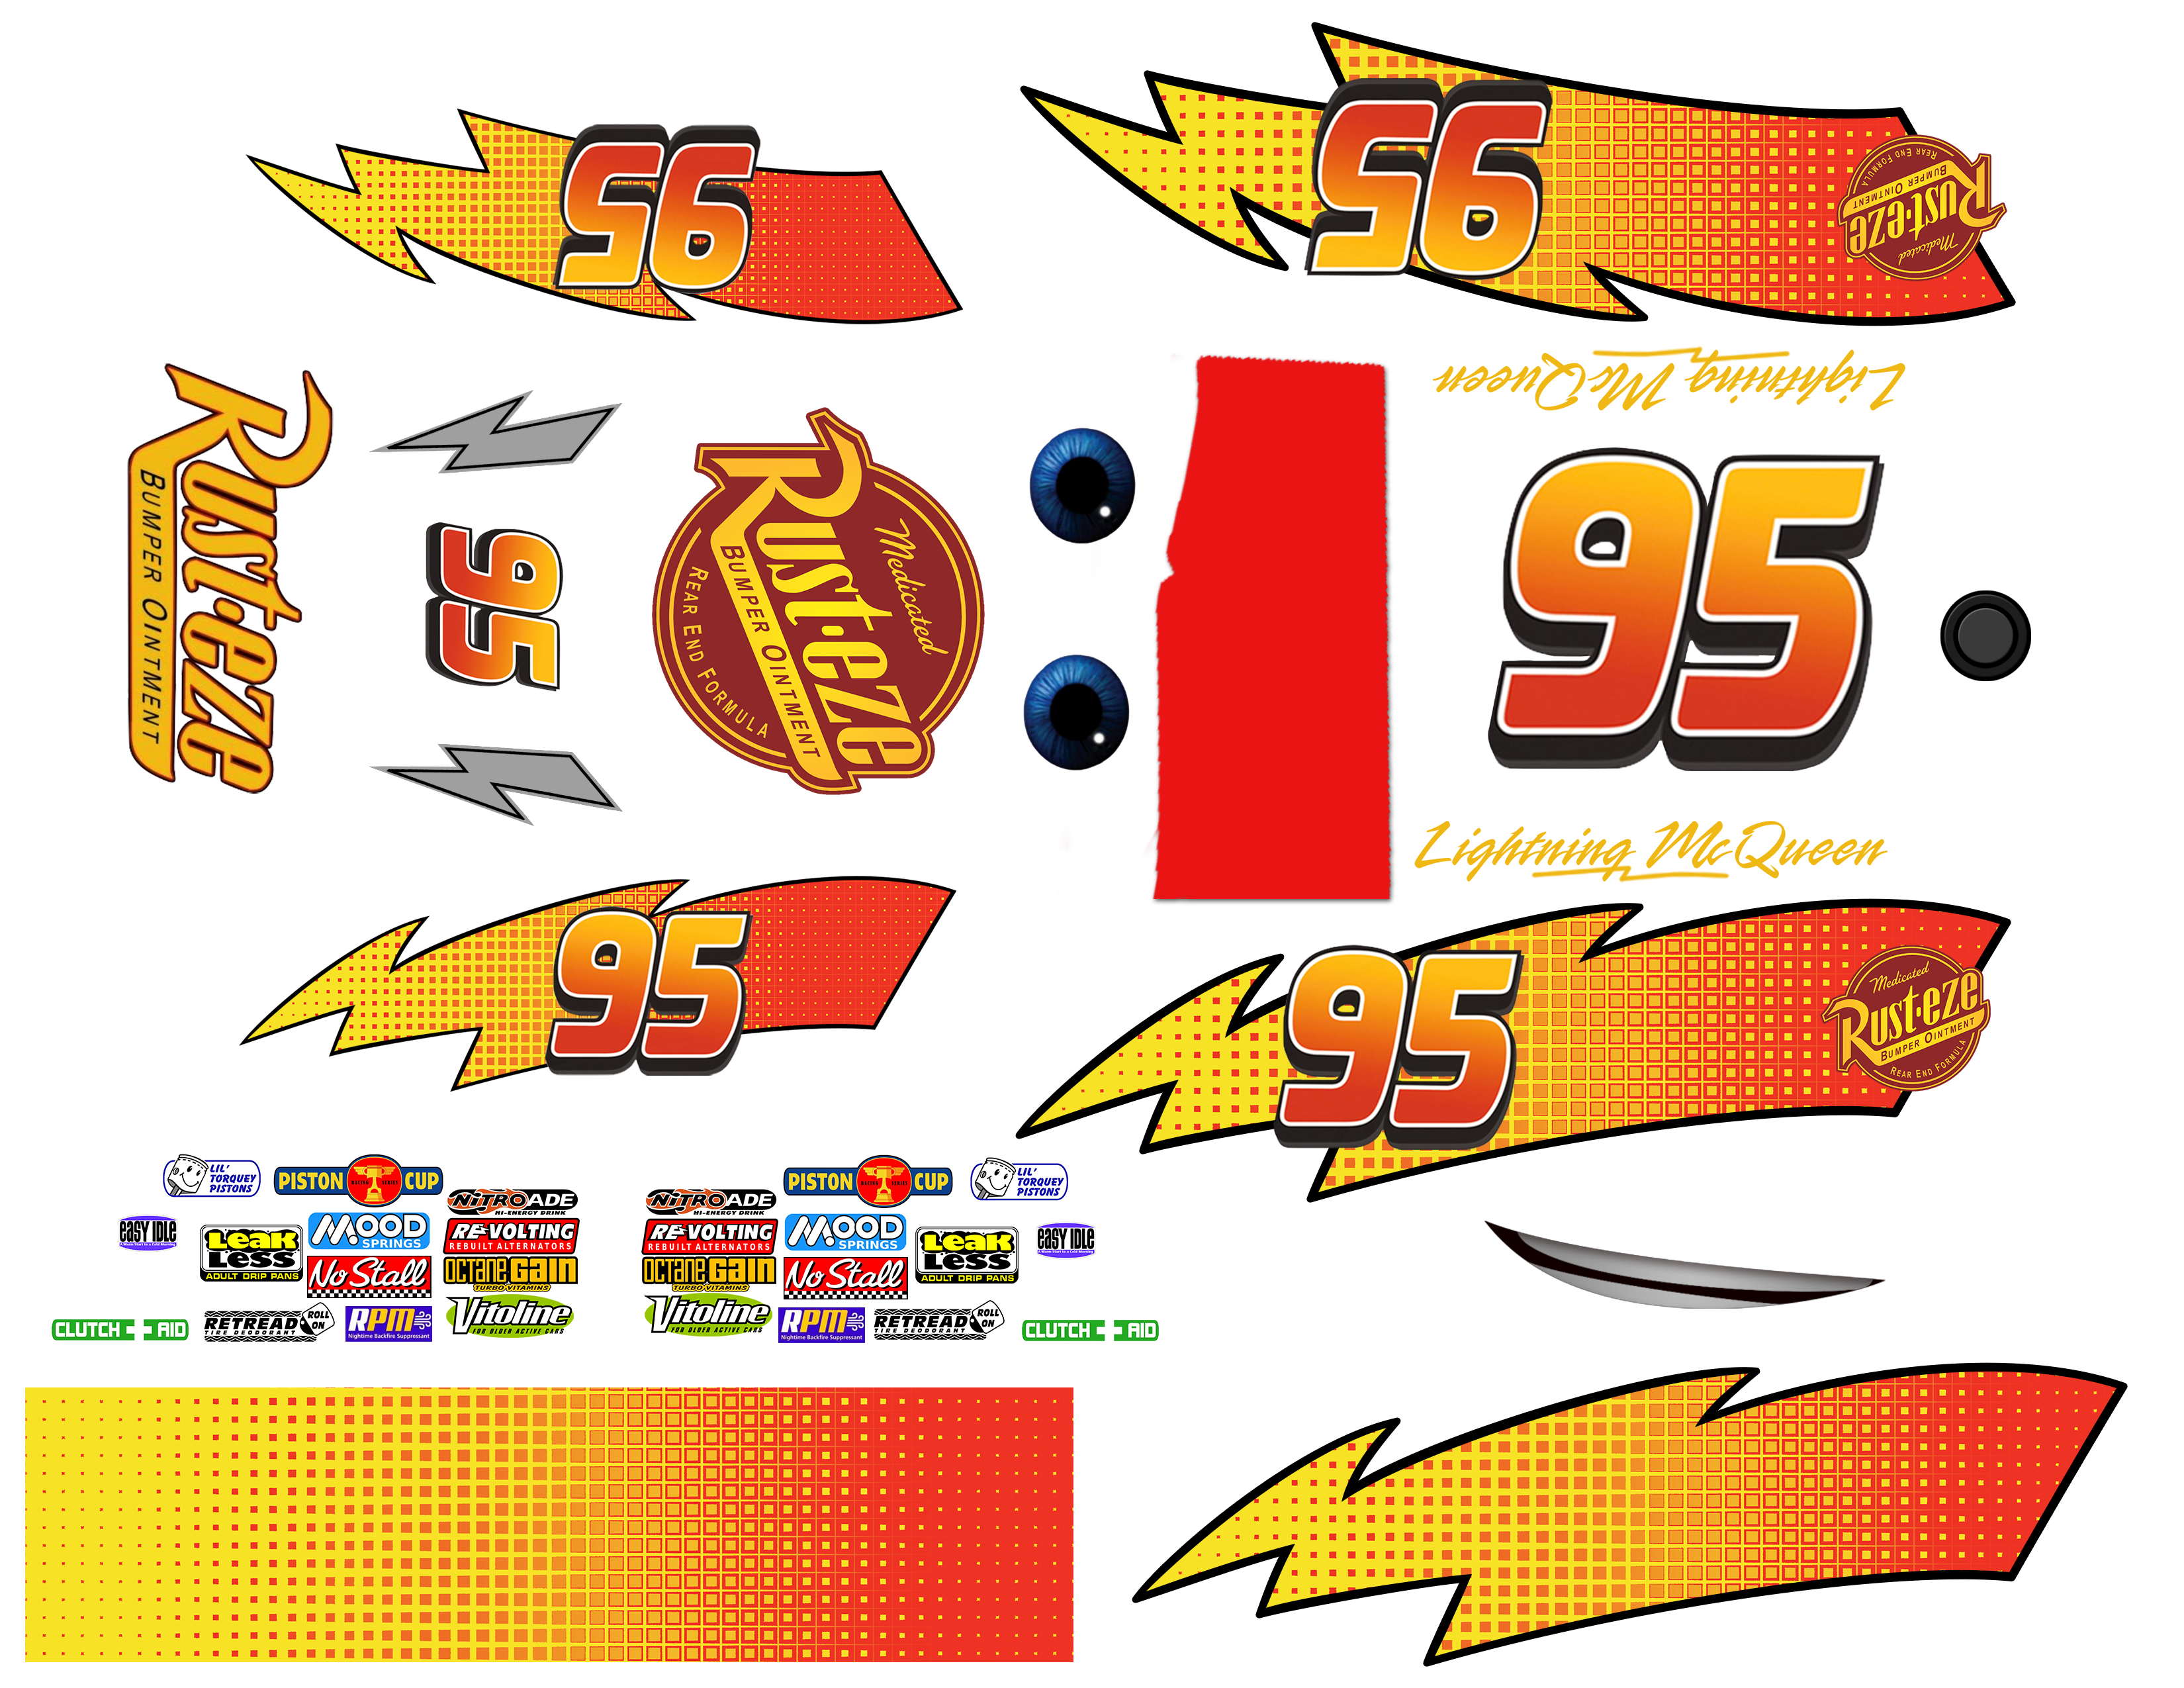 High Res Printable Decals With A Few Extra Options Based On The Designs For The Character Lightning Mcqueen From Pixar S Cool Fonts Plain Lightning Mcqueen [ 2550 x 3300 Pixel ]